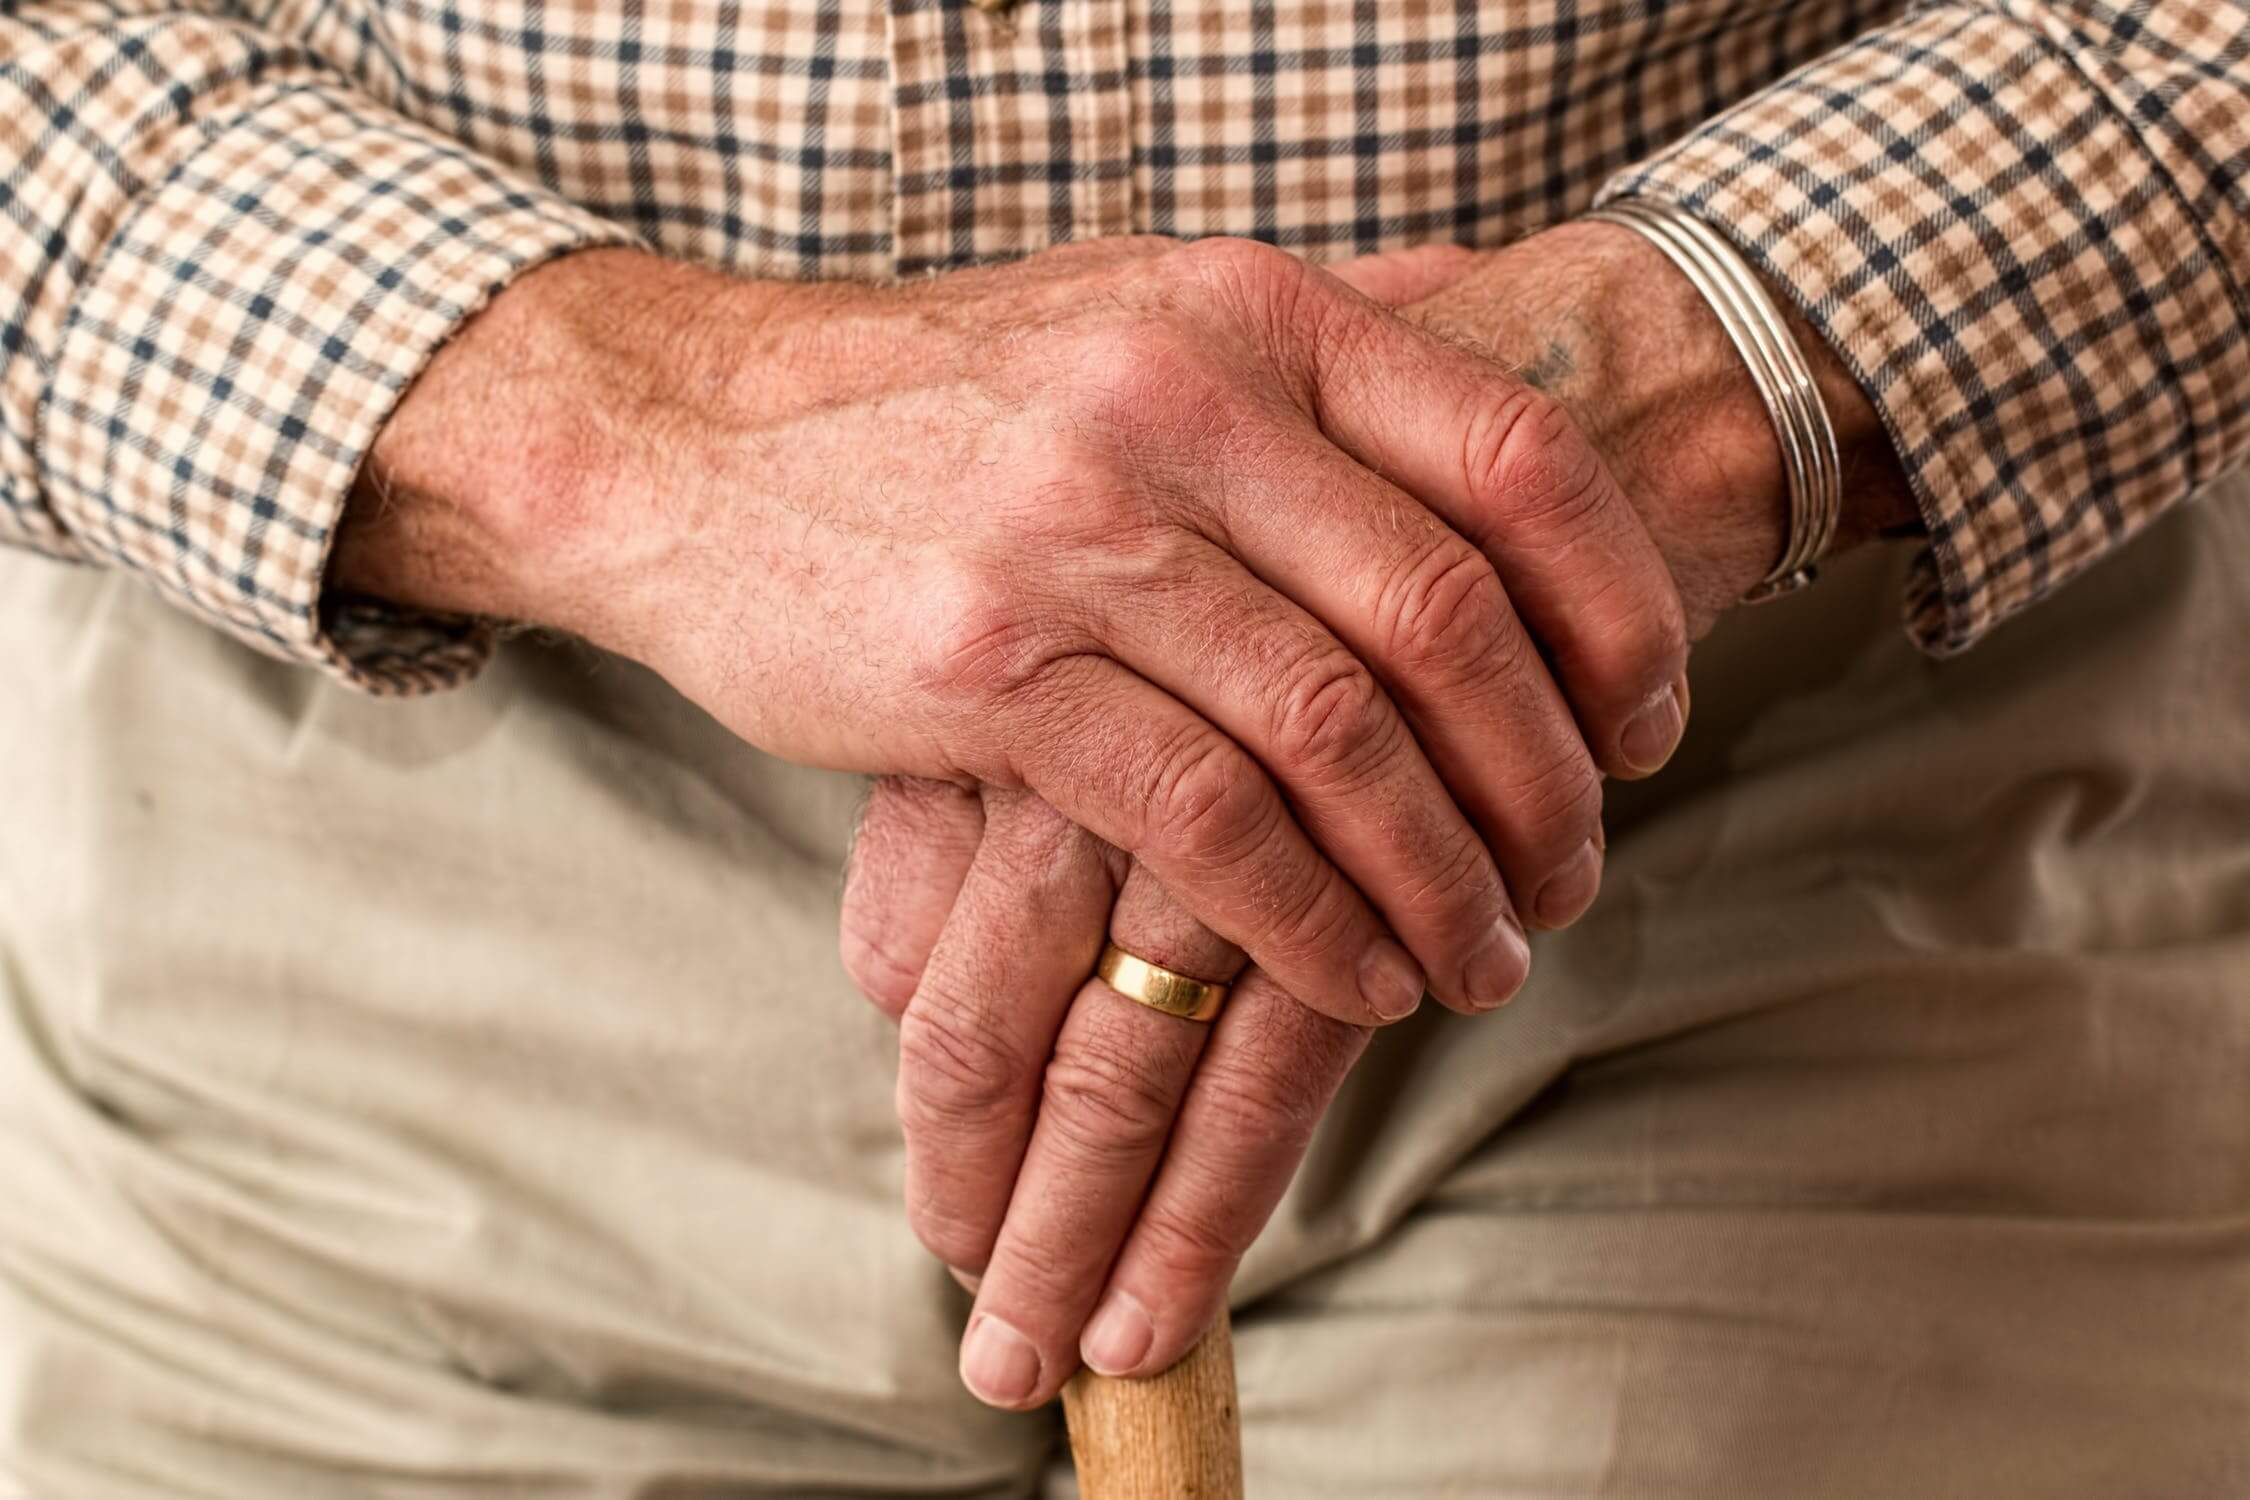 An old man holding his cane while thinking about the benefits of the flu shot for seniors